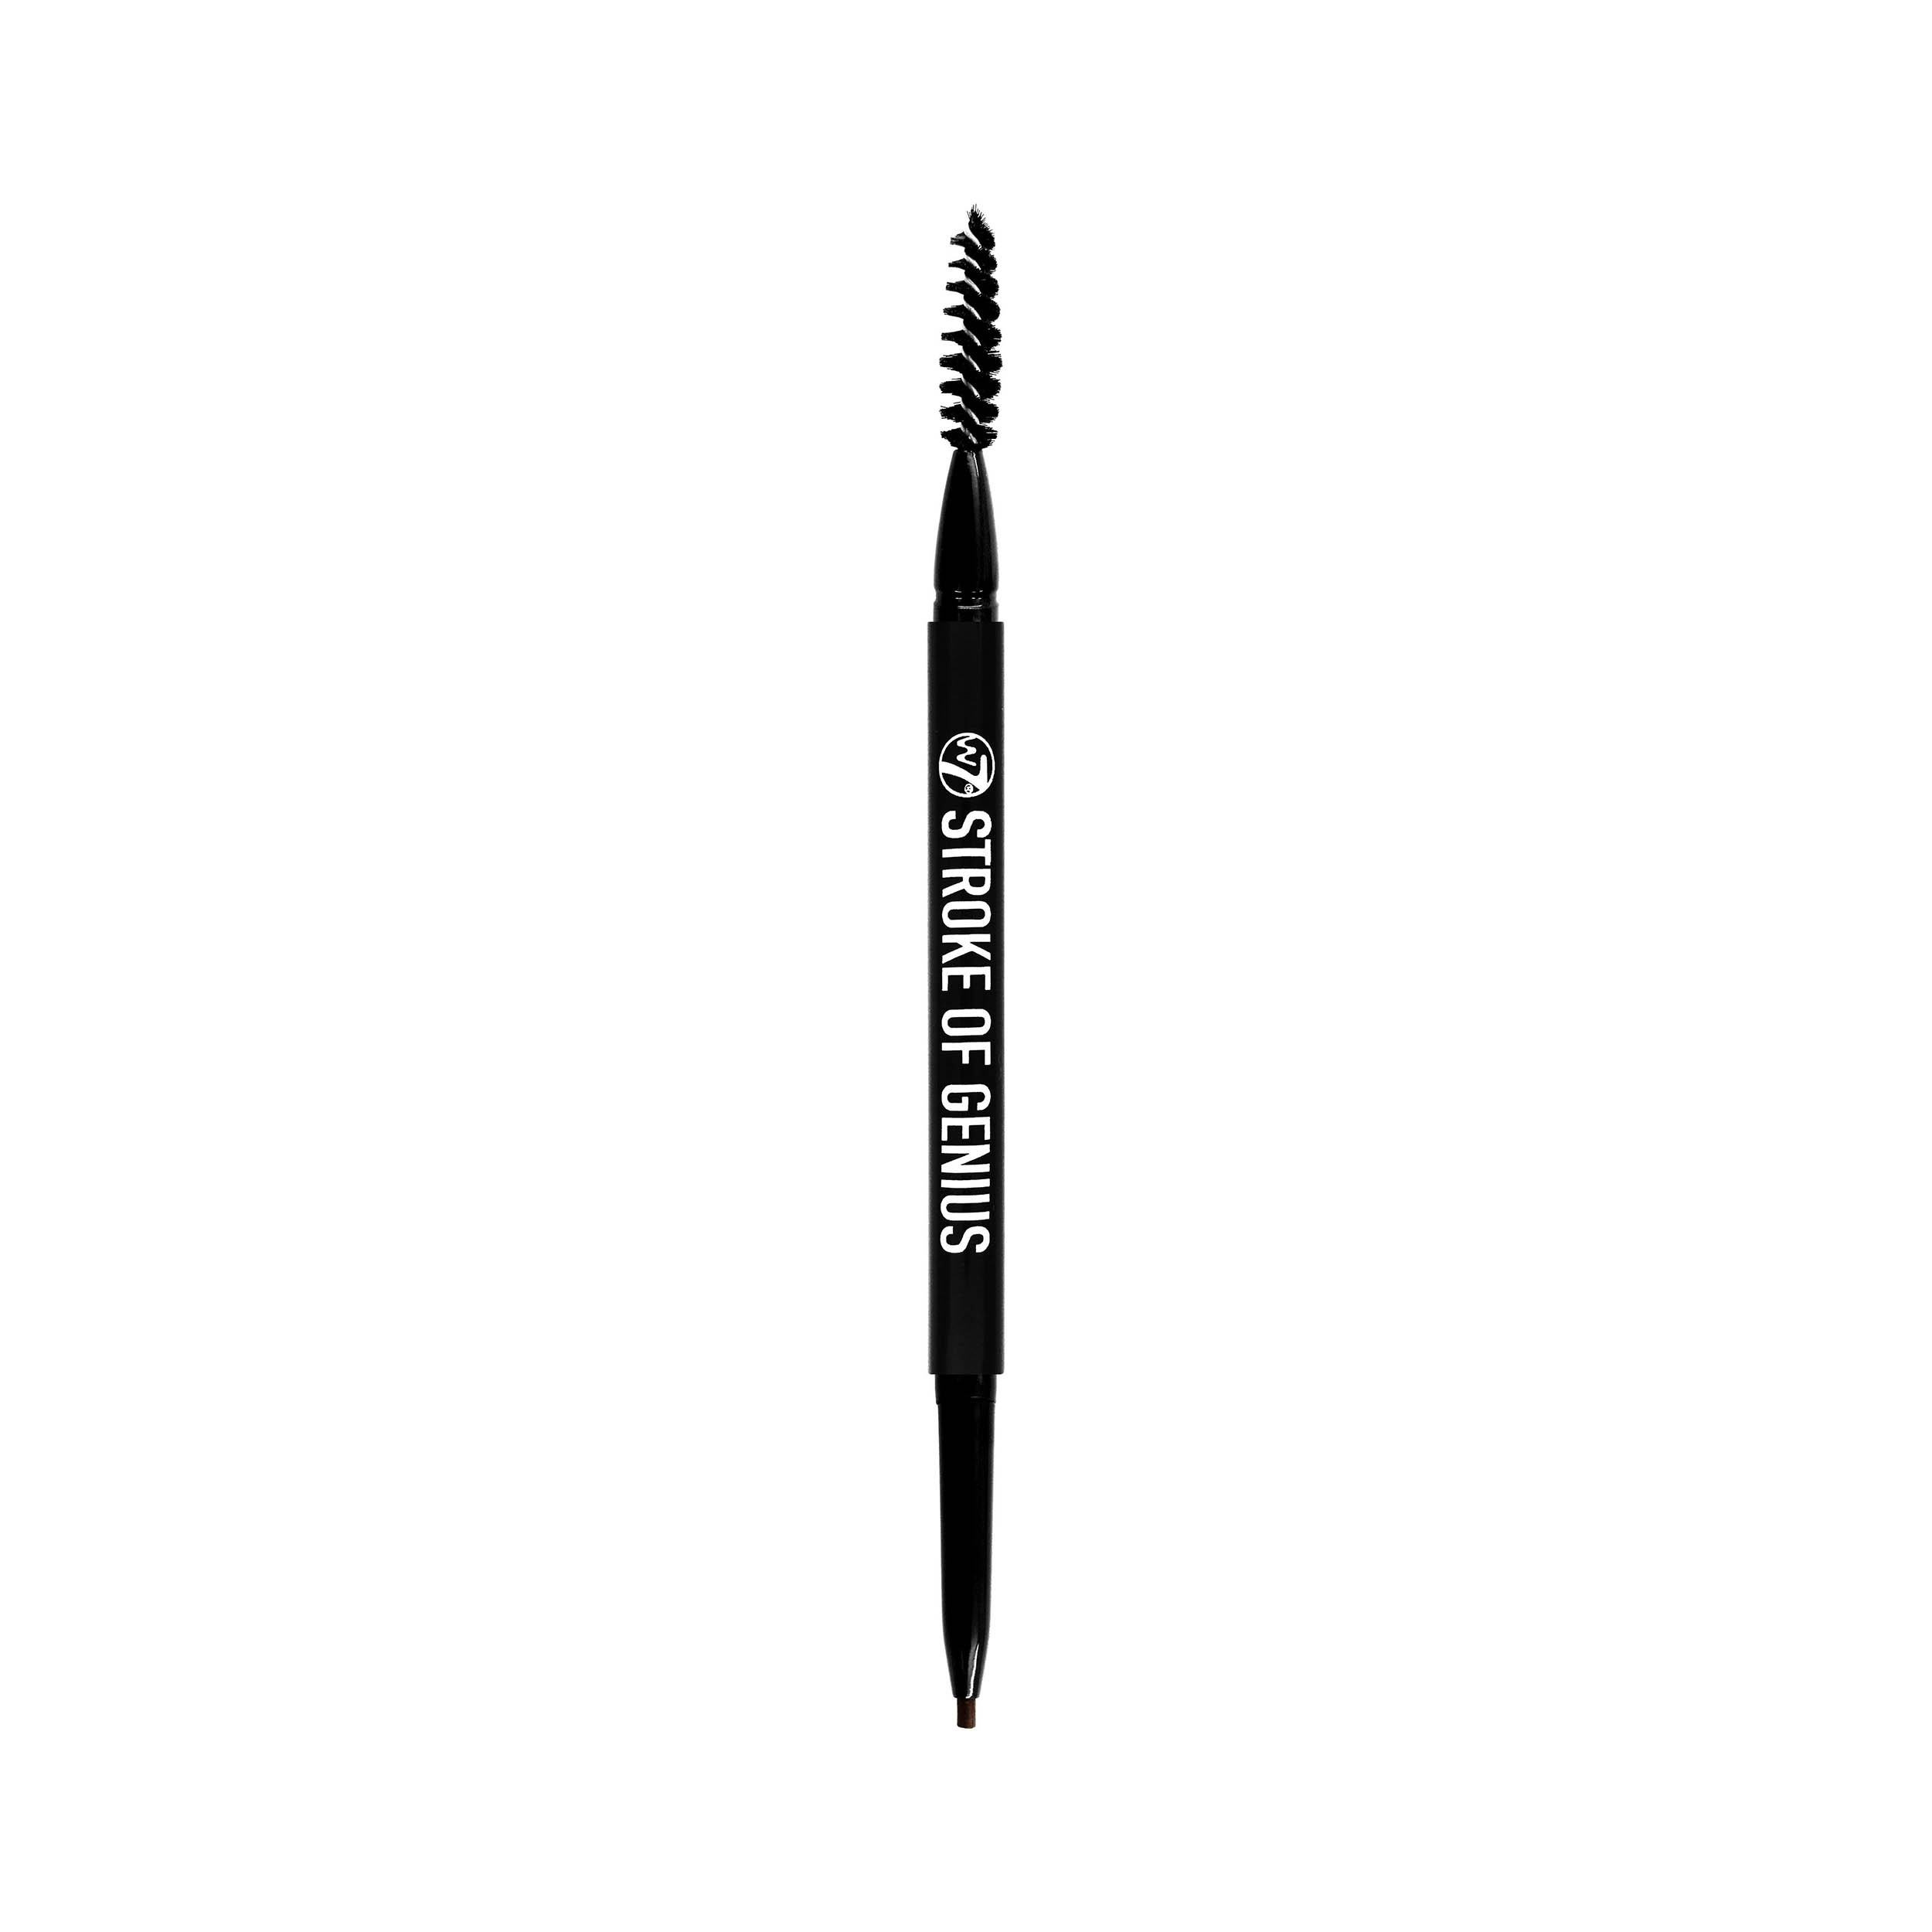 Augenbrauen-Stift - Stroke Of Genius Microblade Eyebrow Pencil